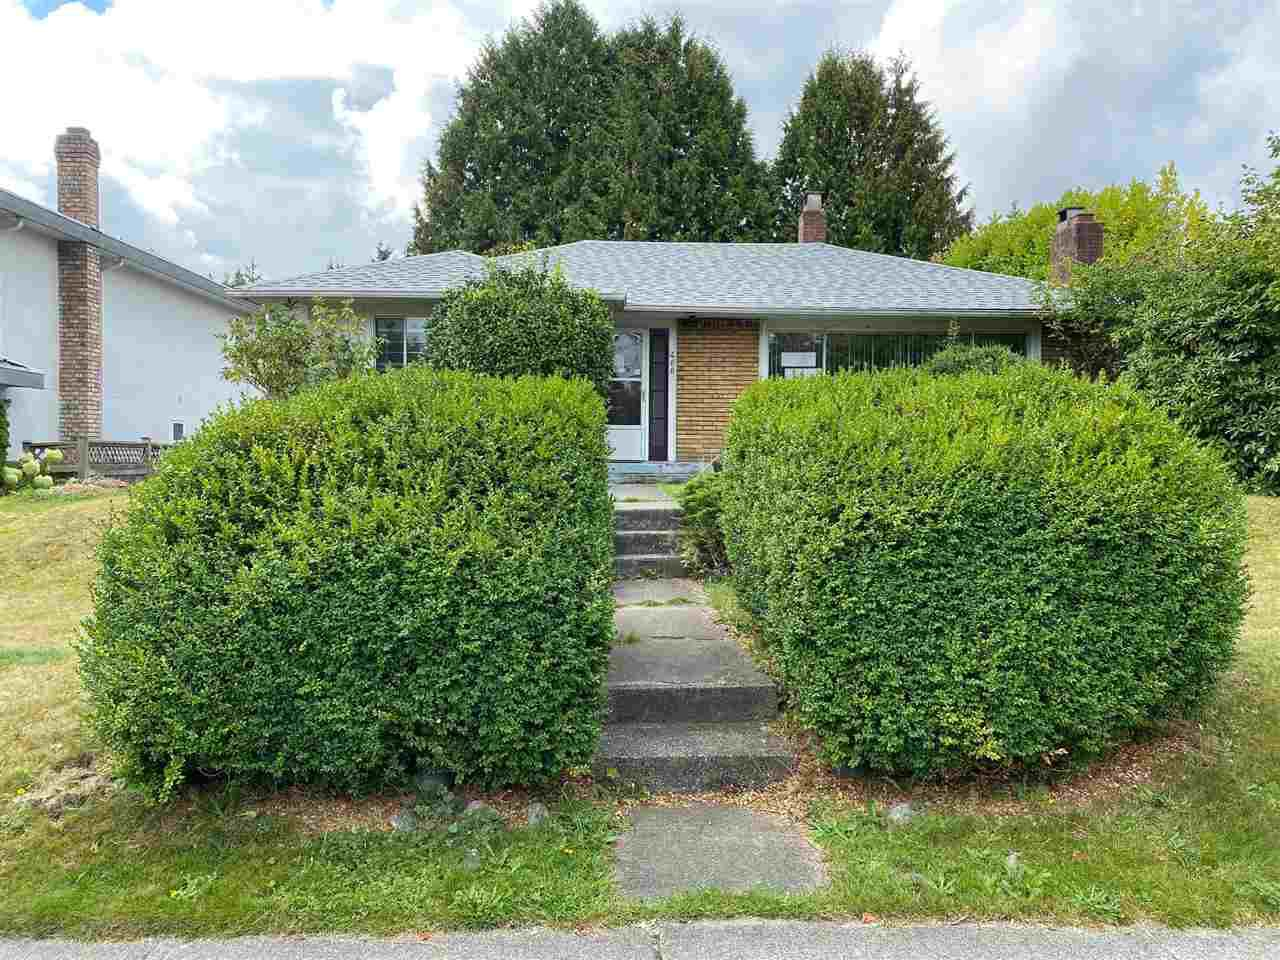 Main Photo: 460 W 48TH Avenue in Vancouver: Oakridge VW House for sale (Vancouver West)  : MLS®# R2493888